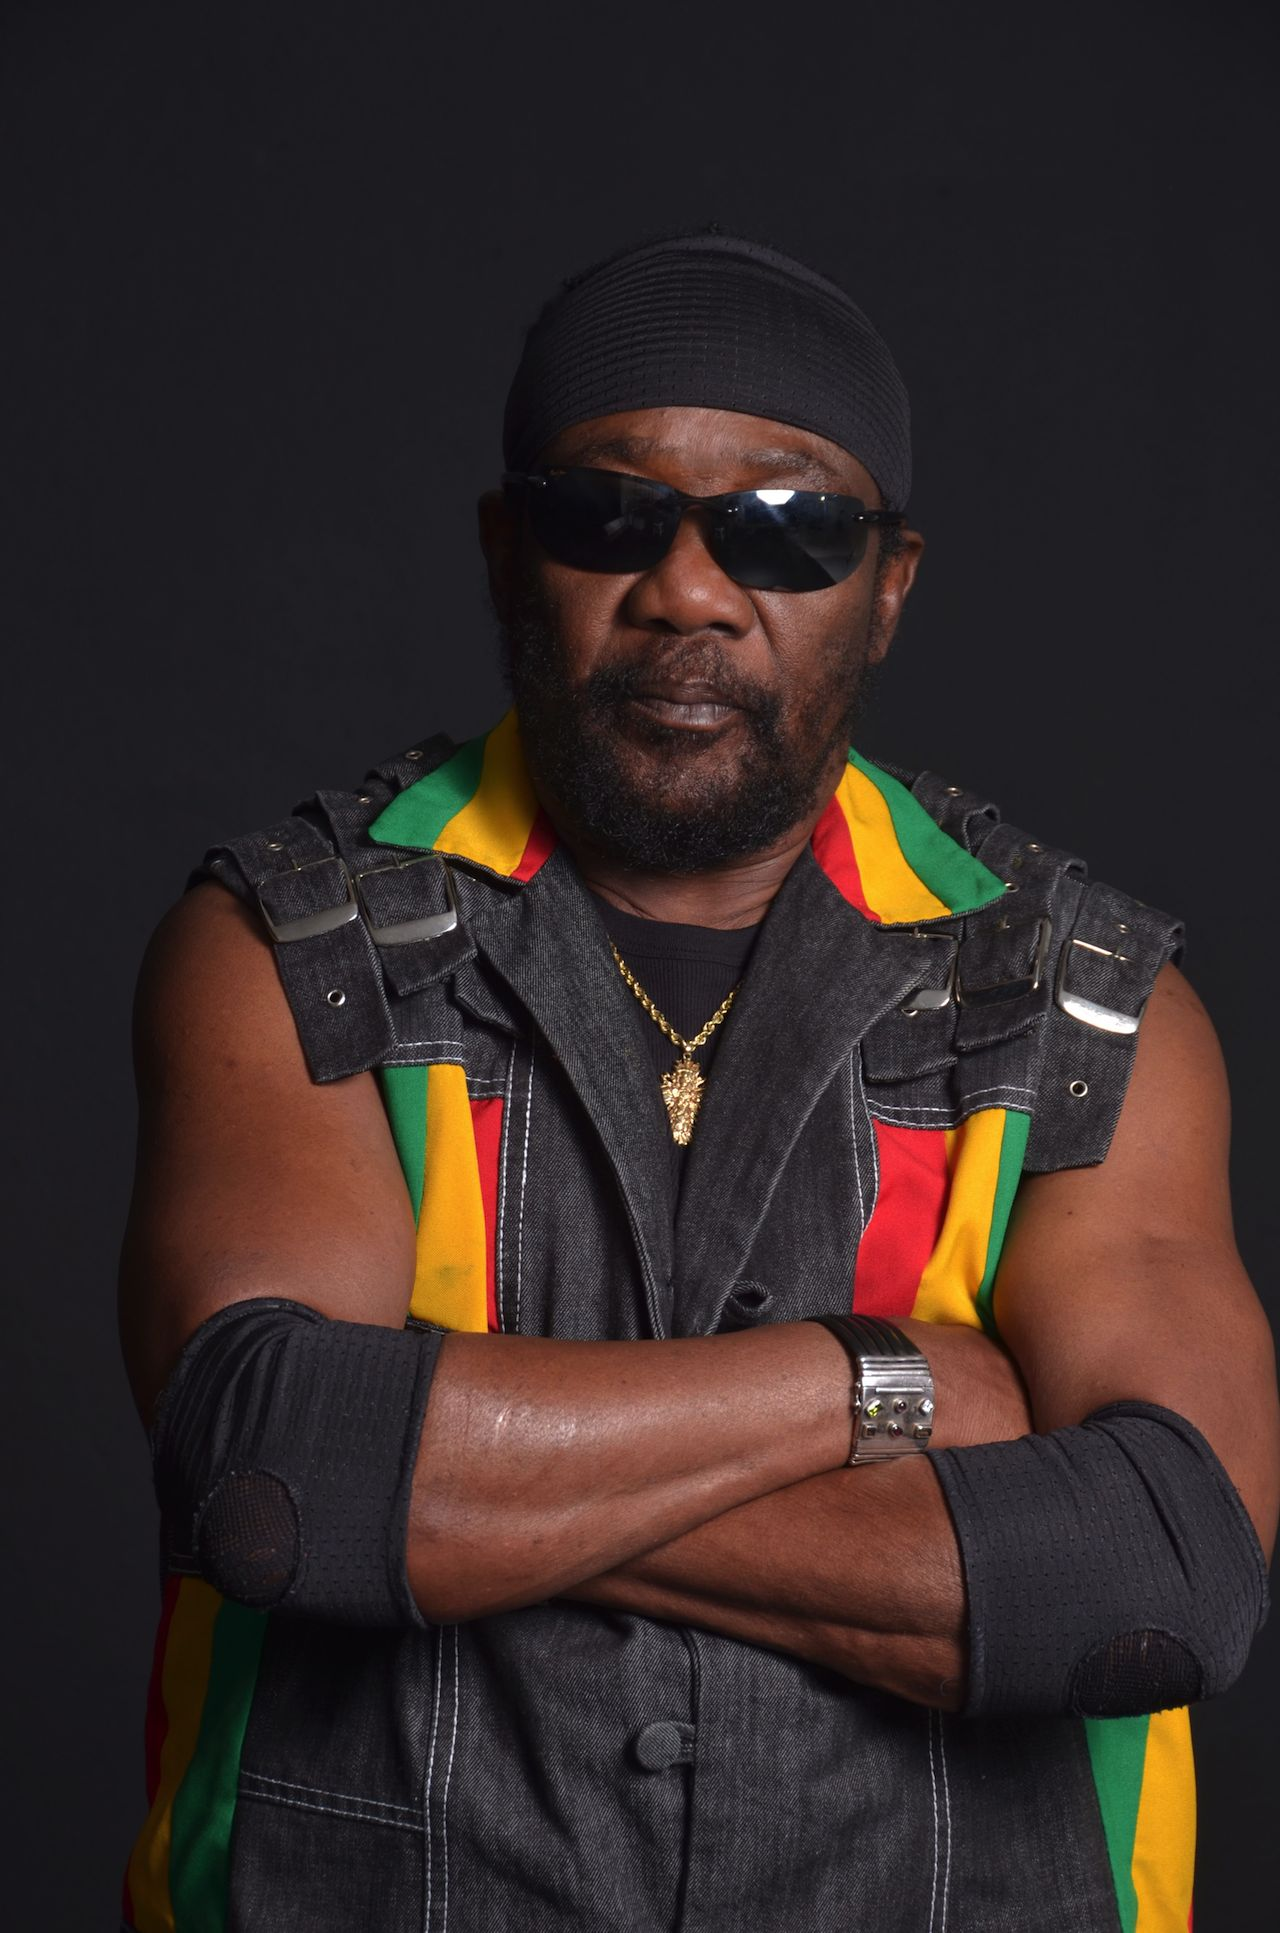 Toots Hibbert hits Triple A charts at #56 with 'Got  to Be Tough'